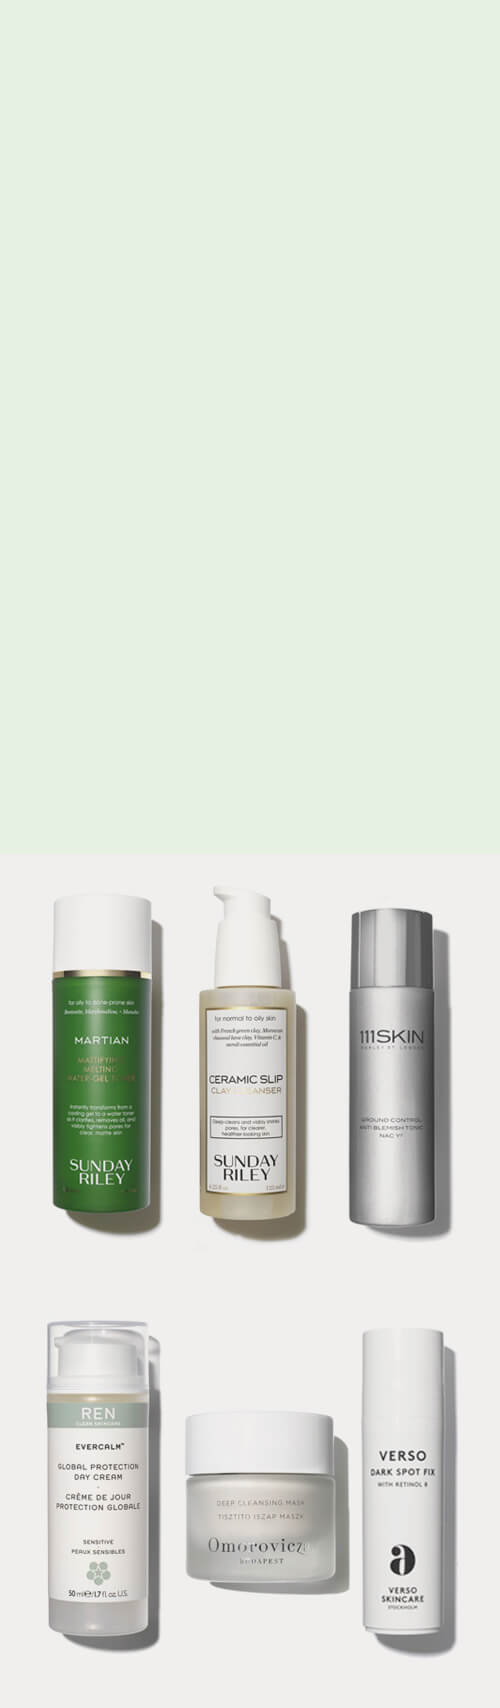 Acne Skincare Edit